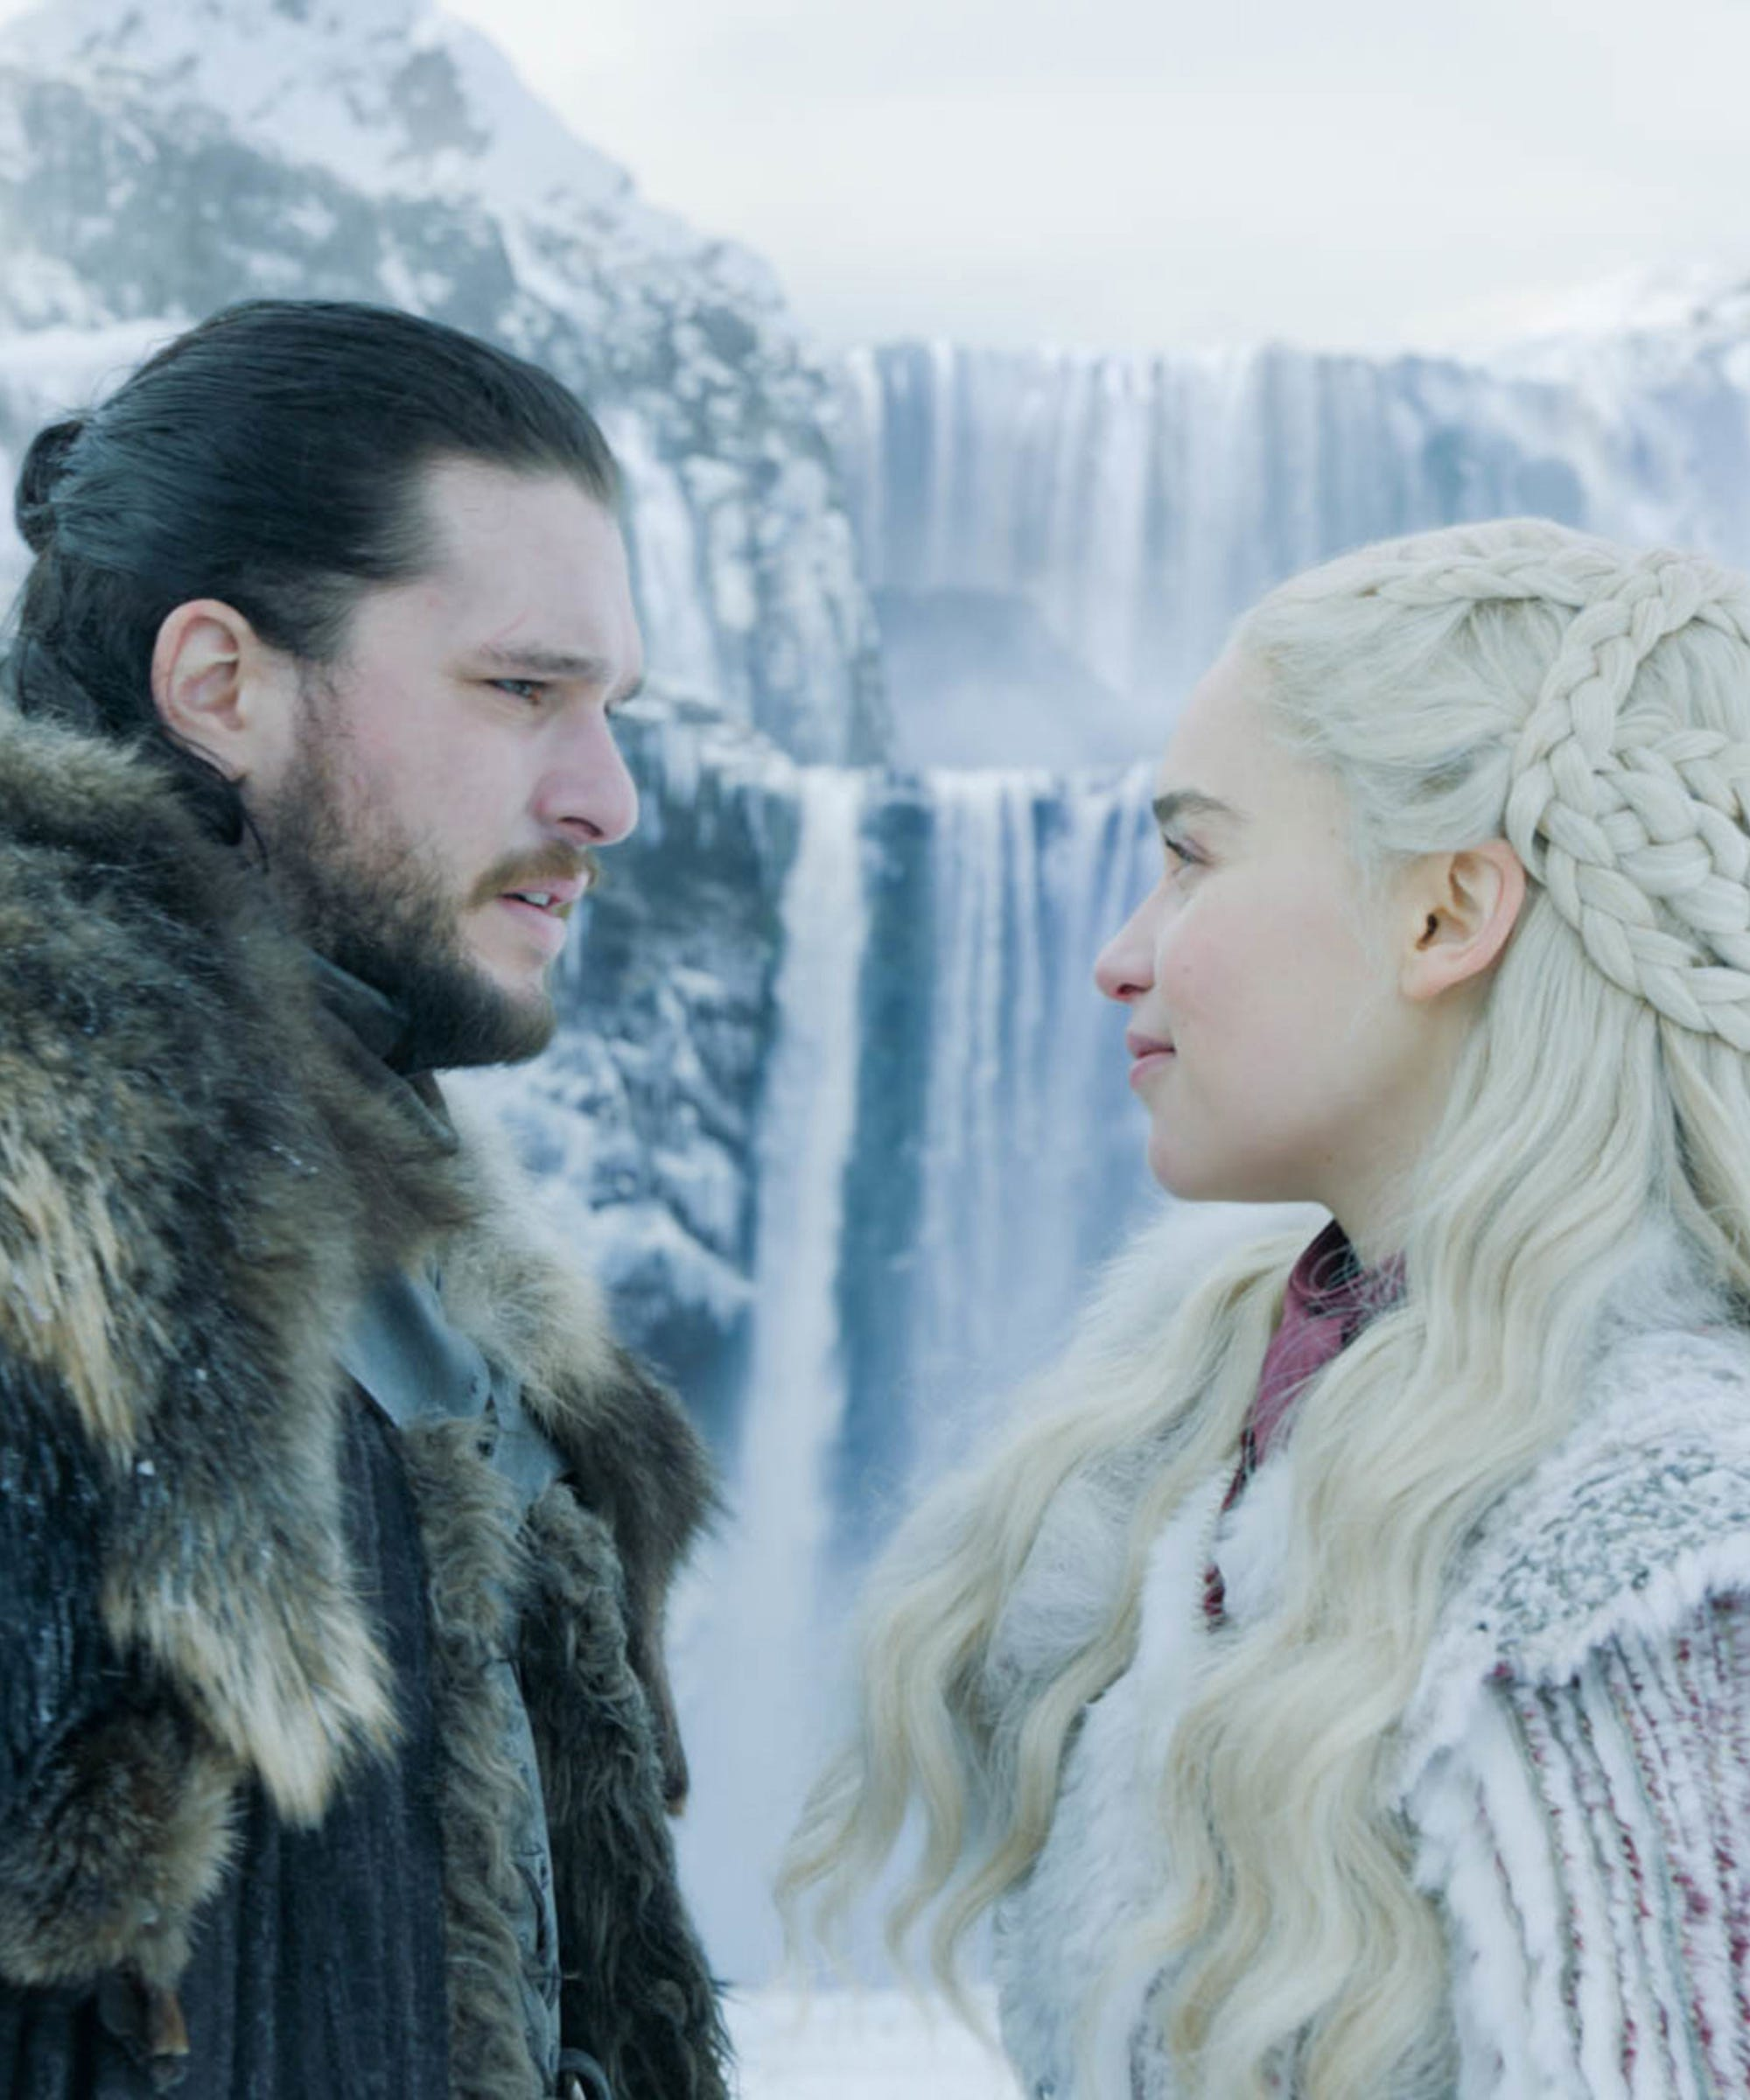 A New Game Of Thrones Album Is Coming & All Your Favorite Artists Are On It